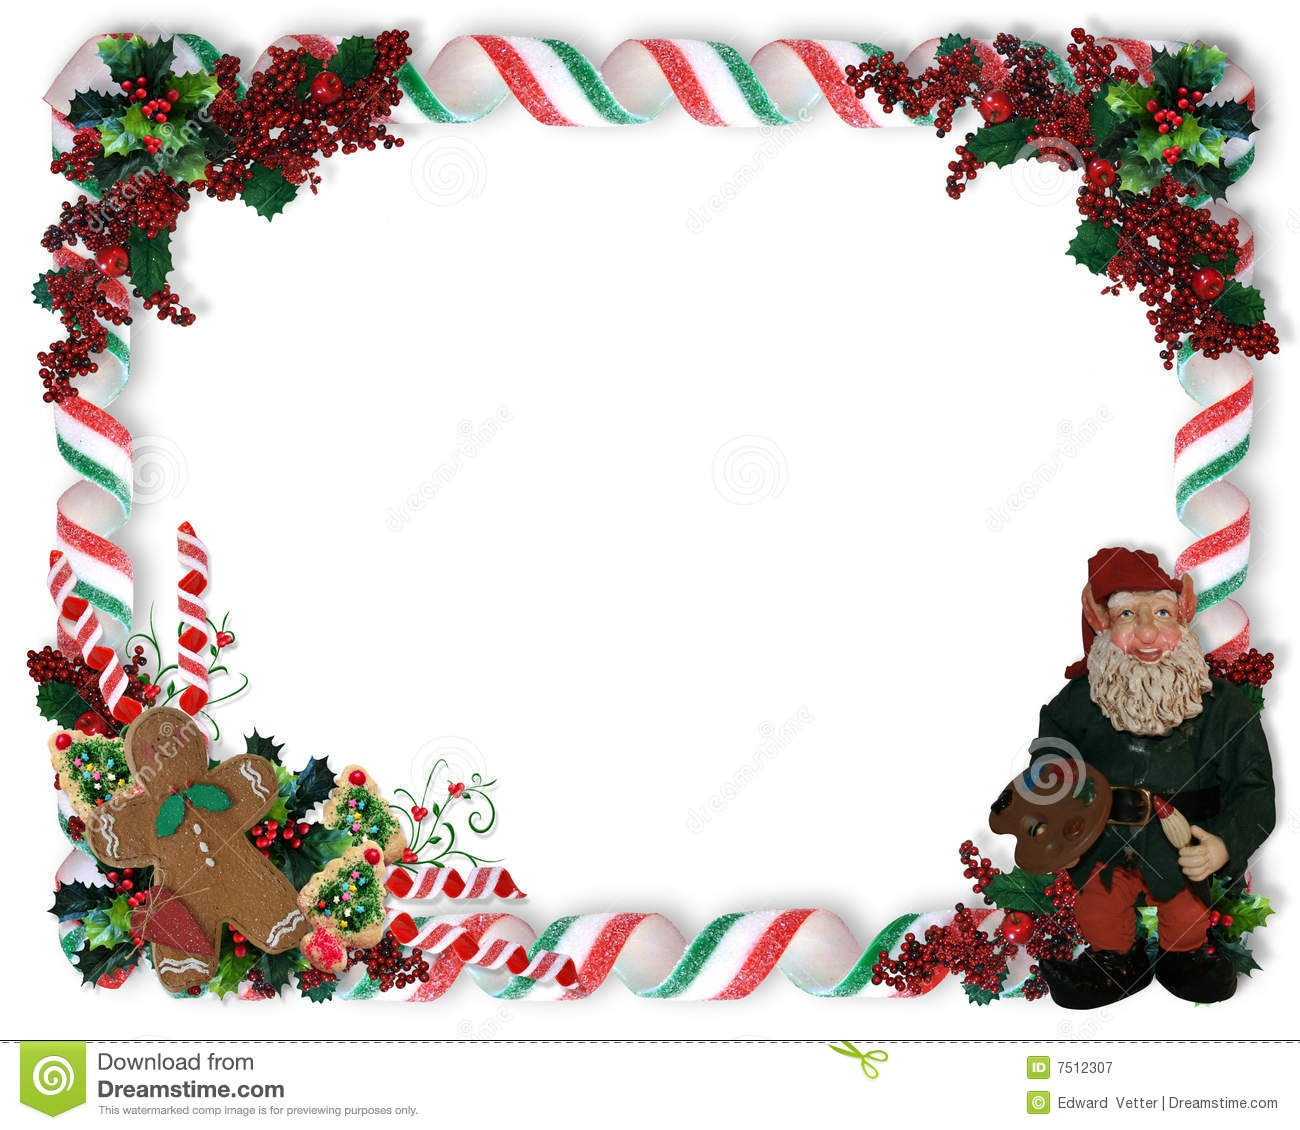 Christmas Border Candy And Elf Stock Illustration - Illustration Of - Free Printable Christmas Frames And Borders